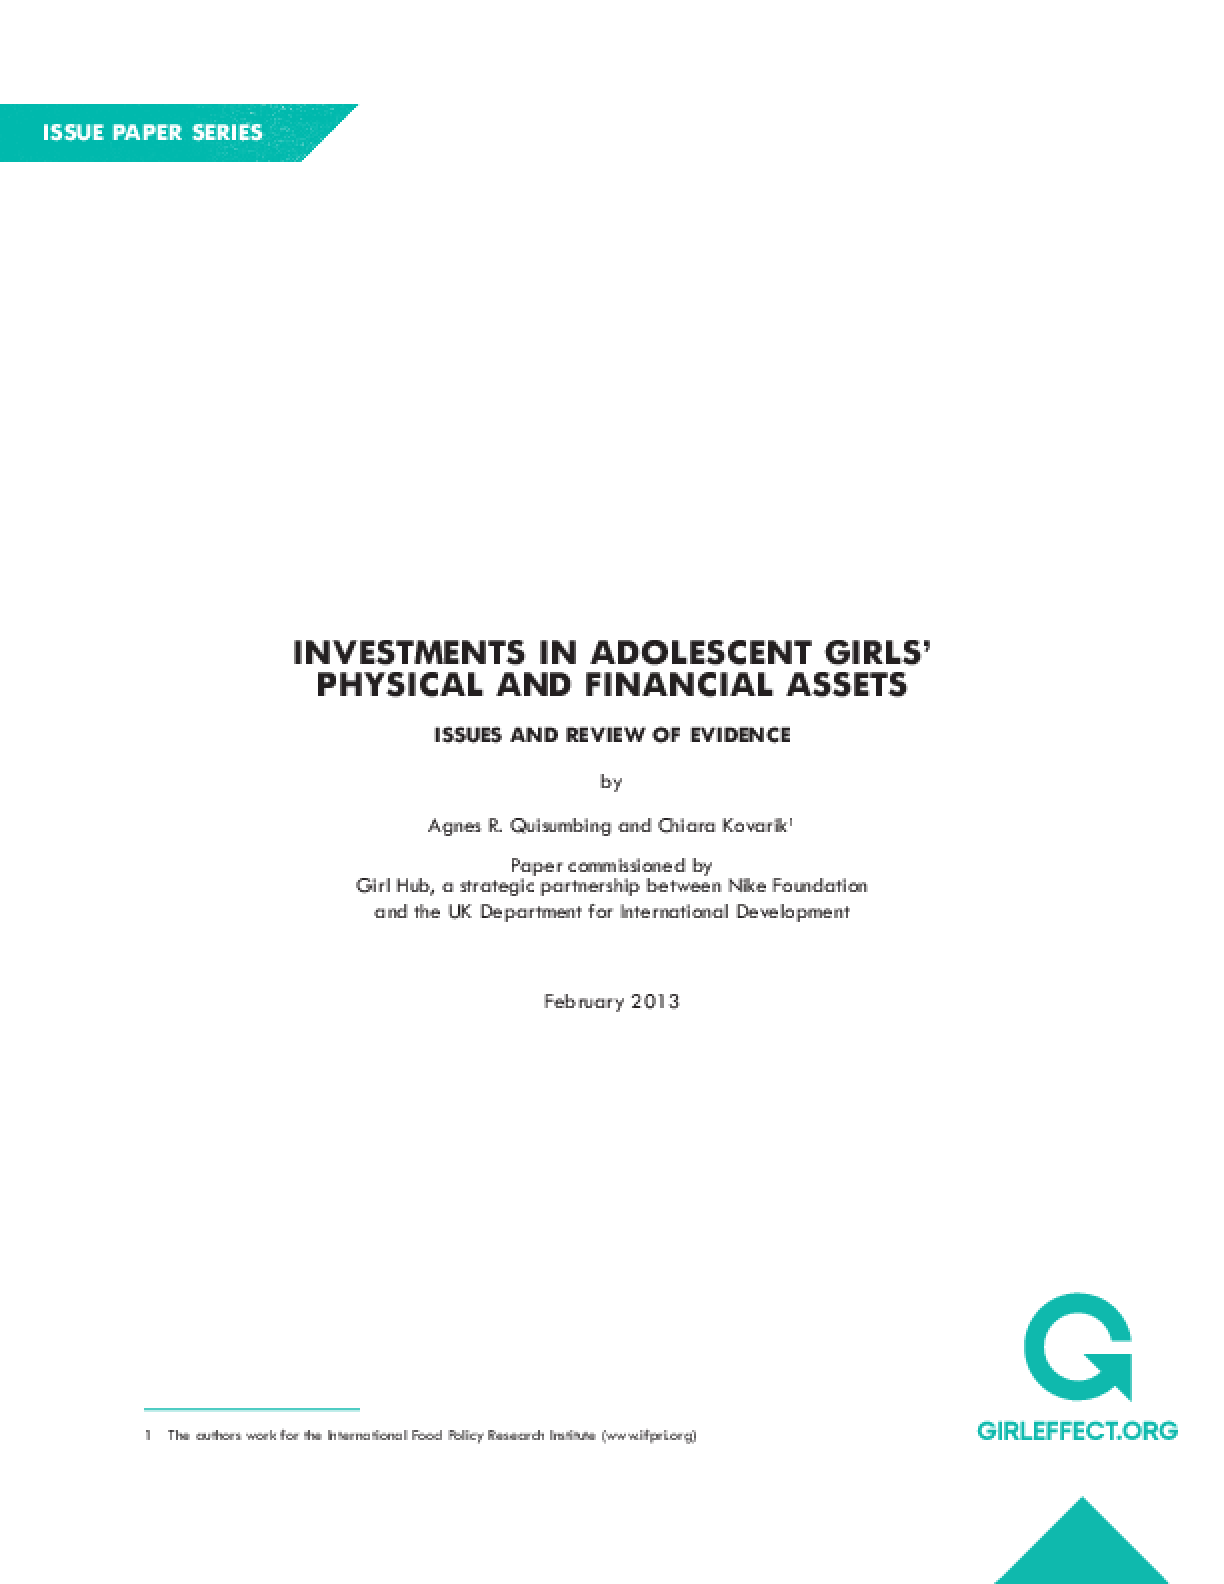 Investments in Adolescent Girl's Physical and Financial Assets: Issues and Review of Evidence